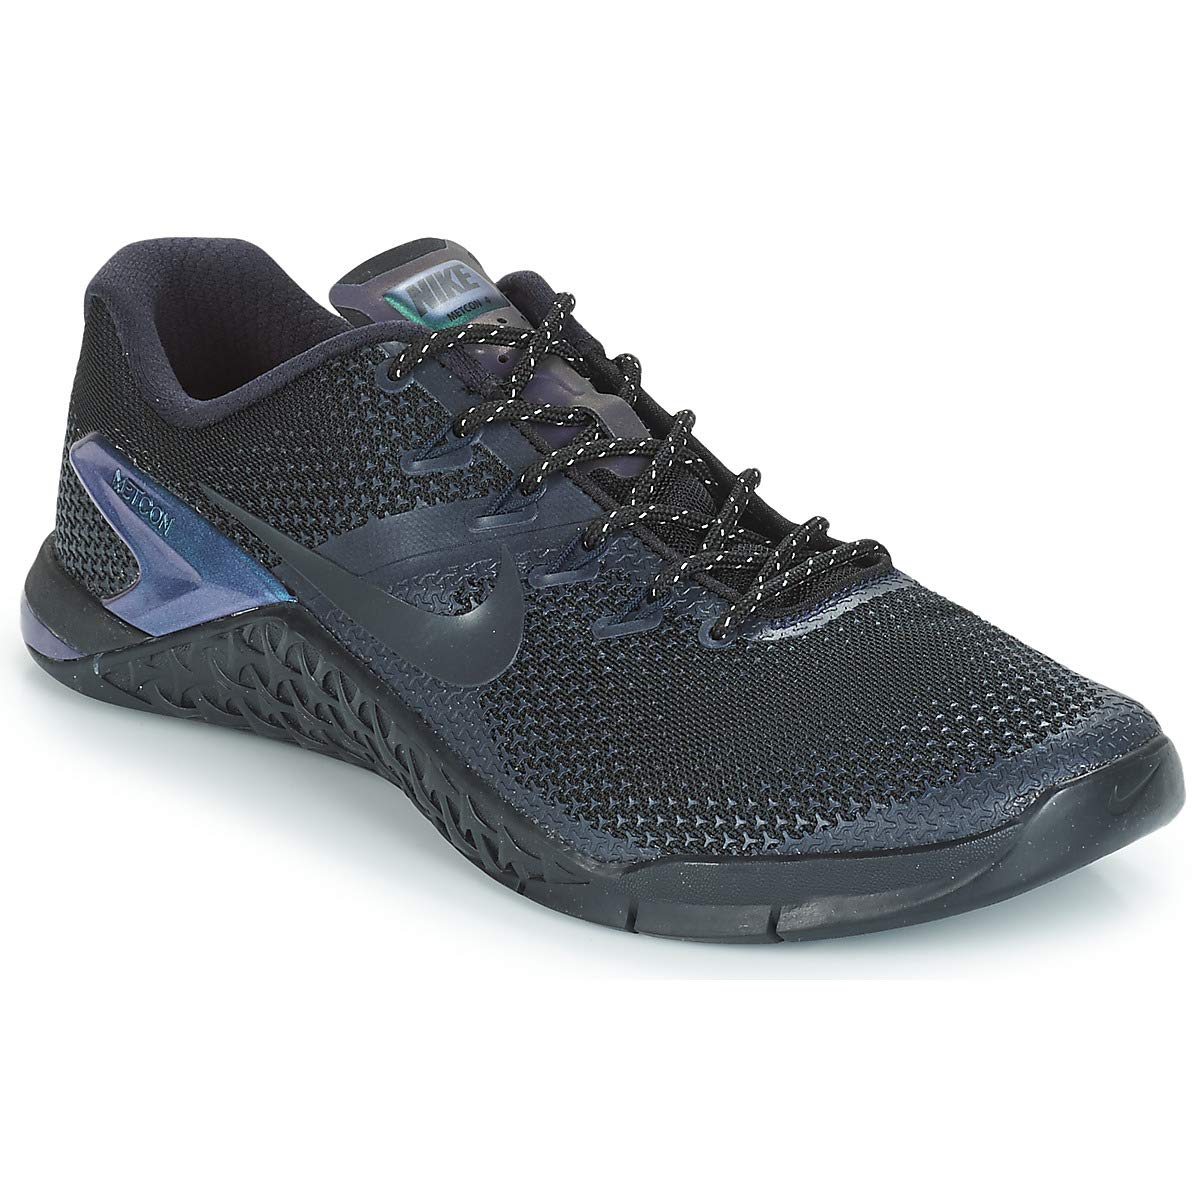 software Diplomático Conexión  Nike Metcon 4 Premium Mens Cross Training Shoes - Buy Online in Aruba. |  [missing {{category}} value] Products in Aruba - See Prices, Reviews and  Free Delivery over 120 ƒ | Desertcart